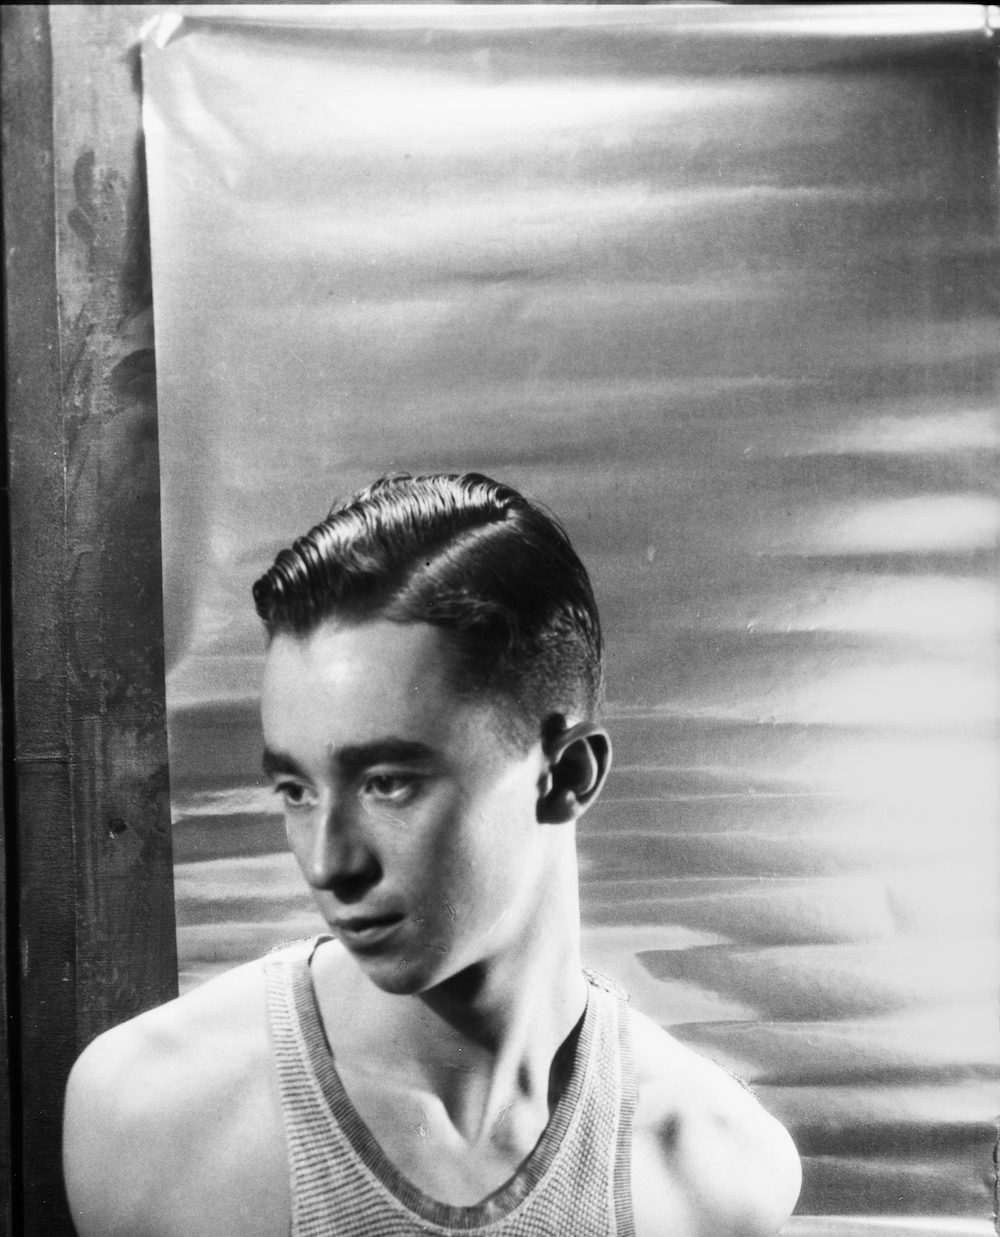 Young Charles James photographed by his friend Cecil Beaton circa 1930. Image courtesy of Rizzoli.